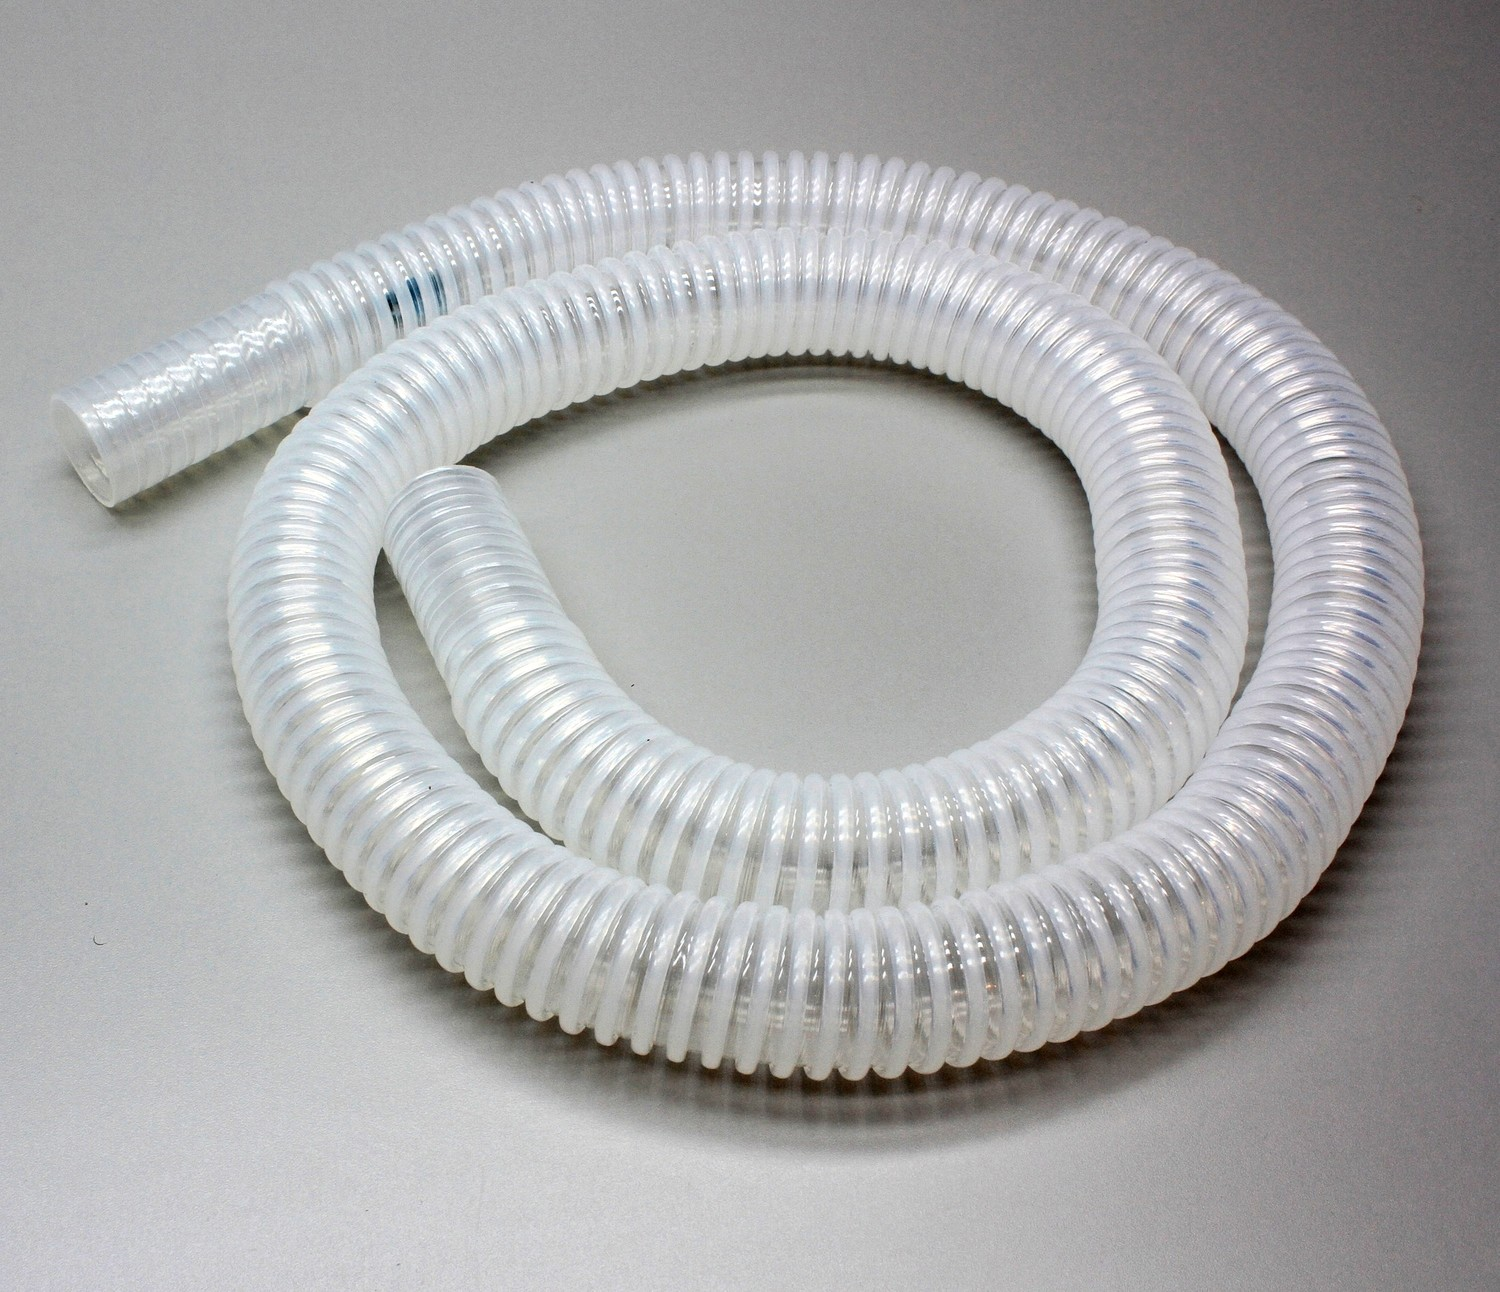 Clean Bore Tubing -1.375 in ID X 72 in L